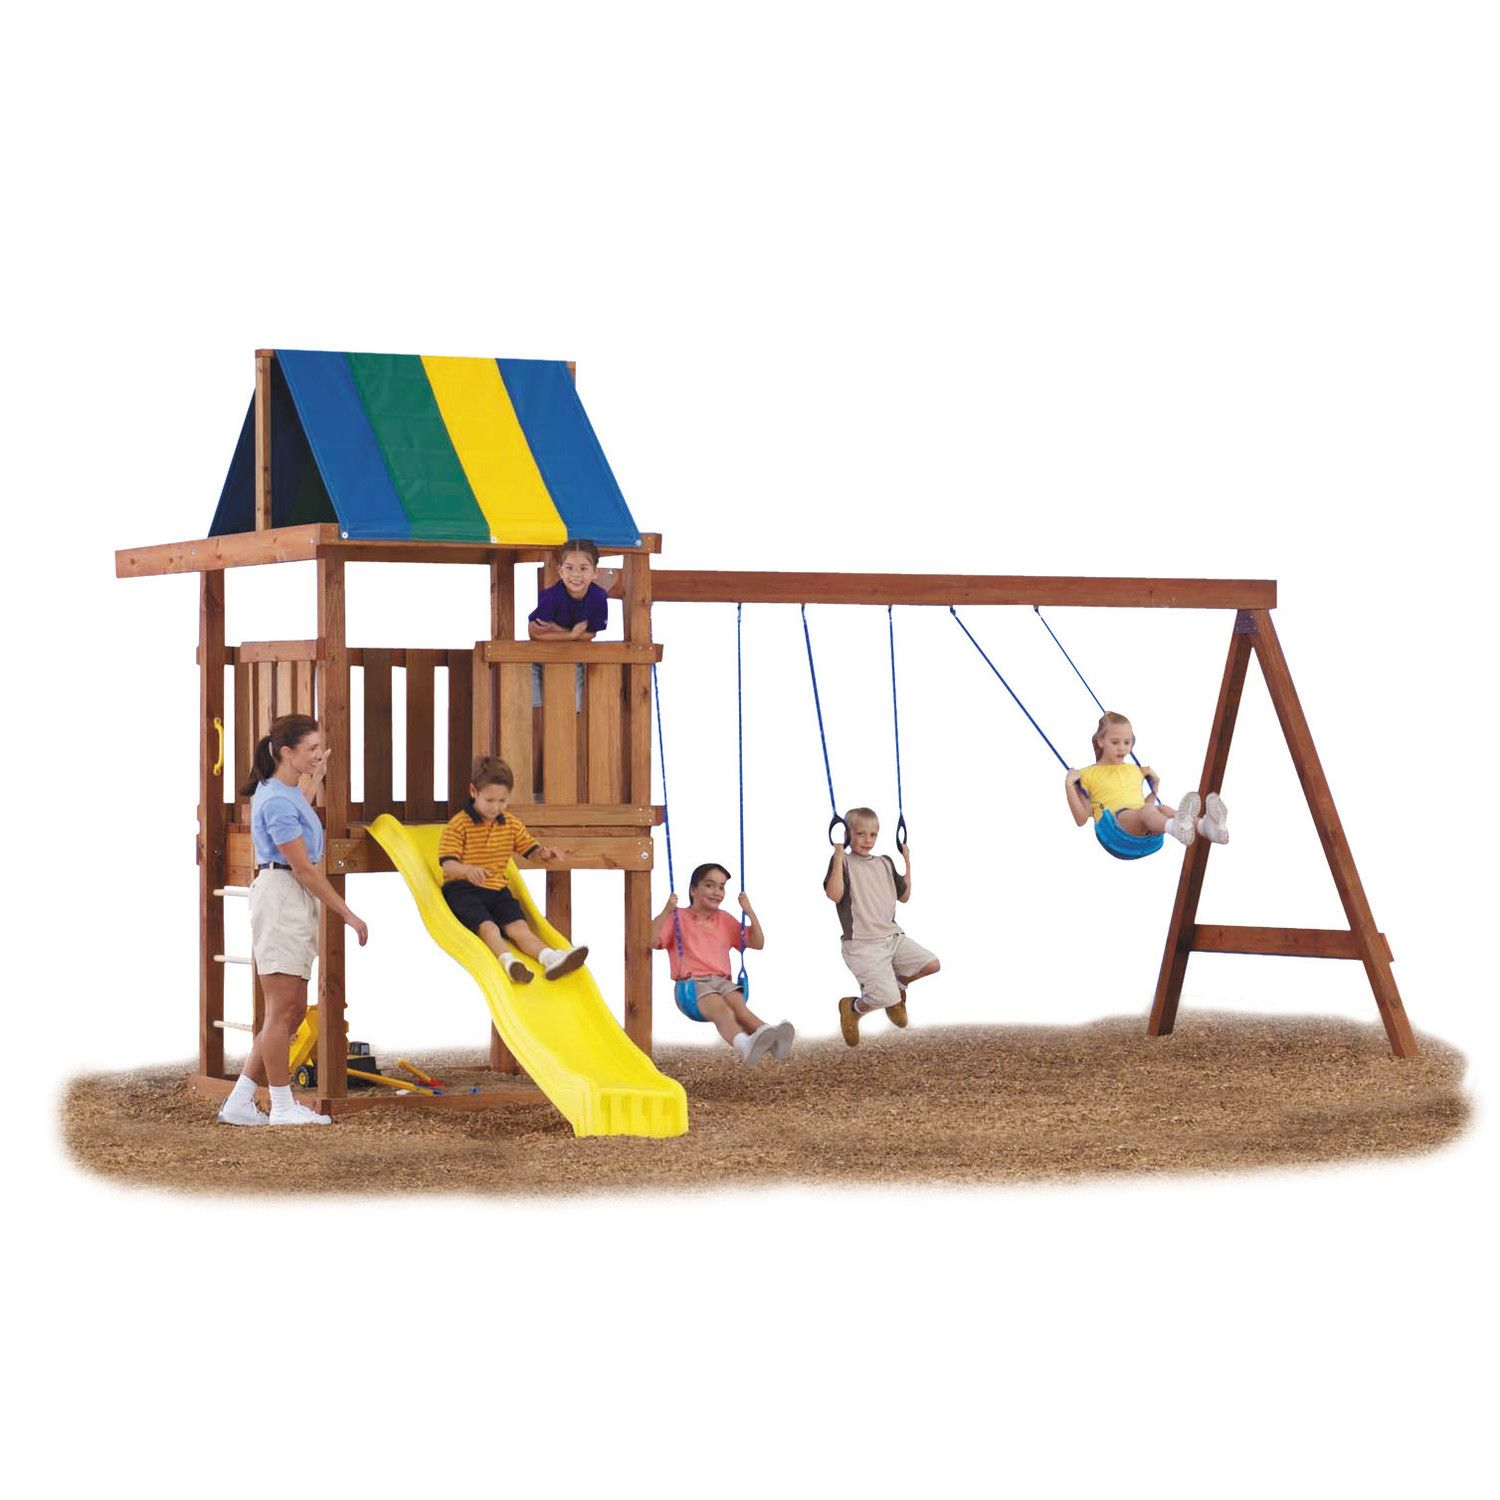 seats spacesaver kids backyard playground swing play slide outdoor itm metal set